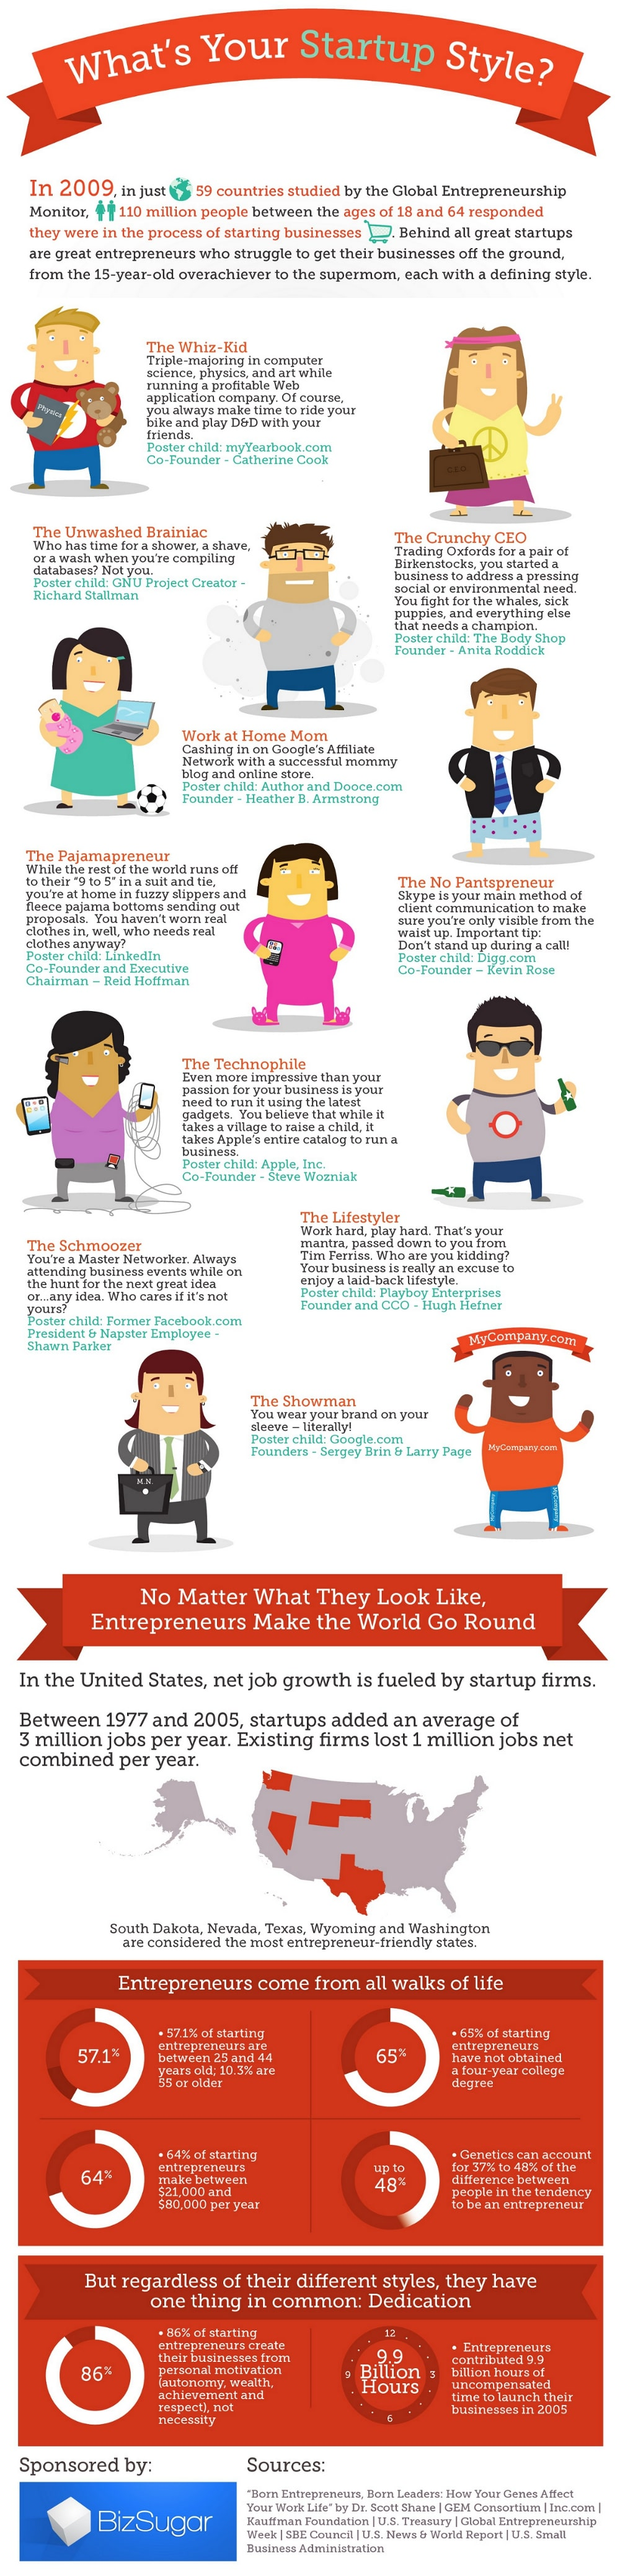 10 Entrepreneurial Styles: Which One Are You? [Infographic]